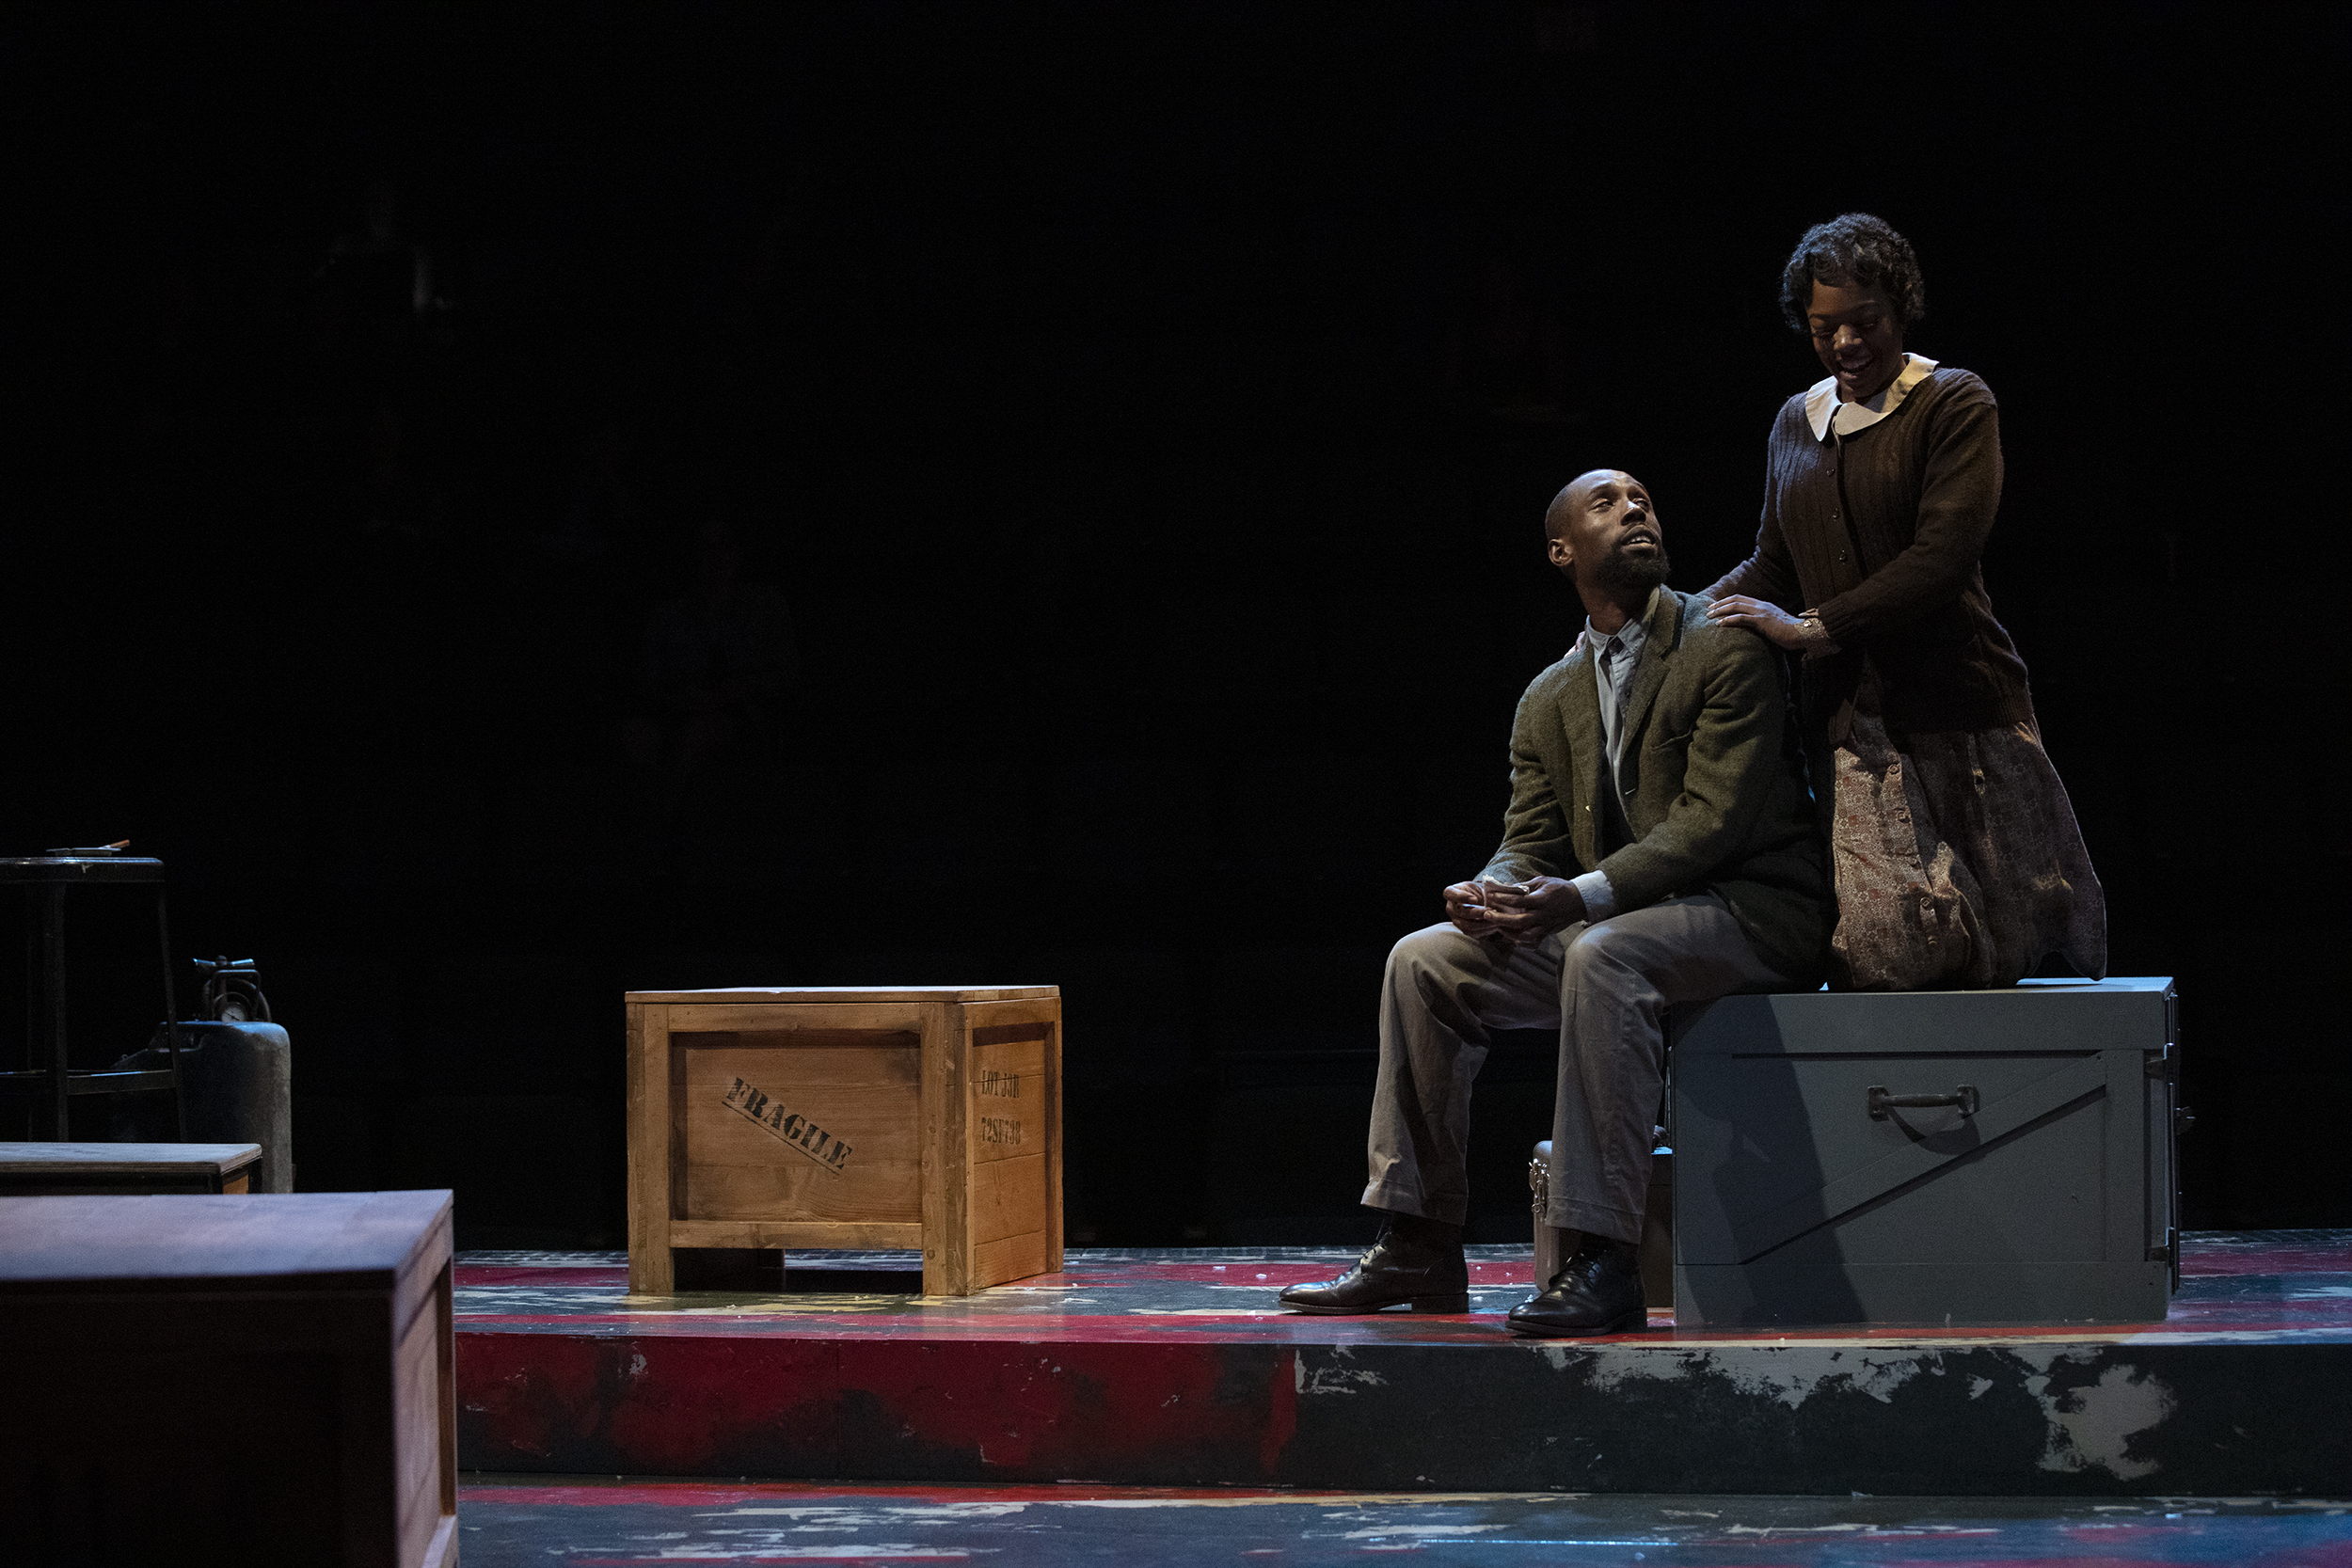 A male and female actor sit on military style crates while talking on stage..